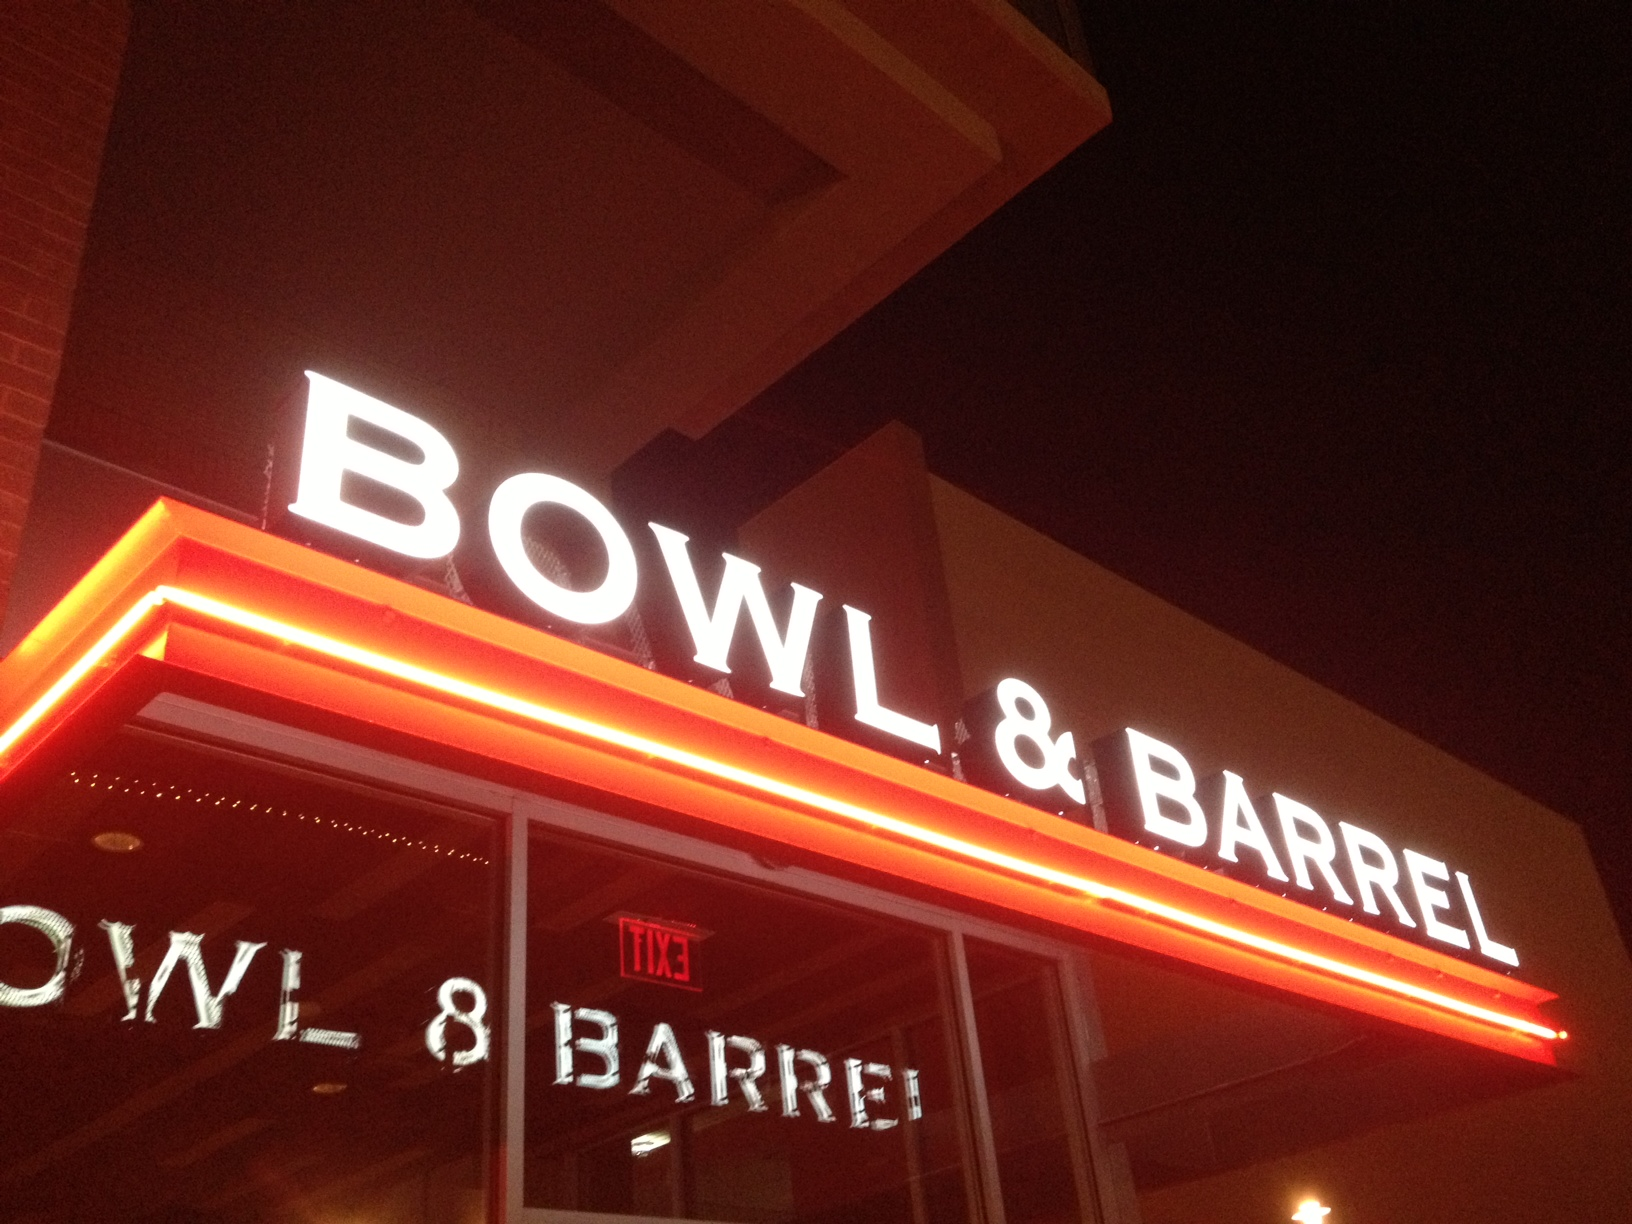 Bowl & Barrel signage